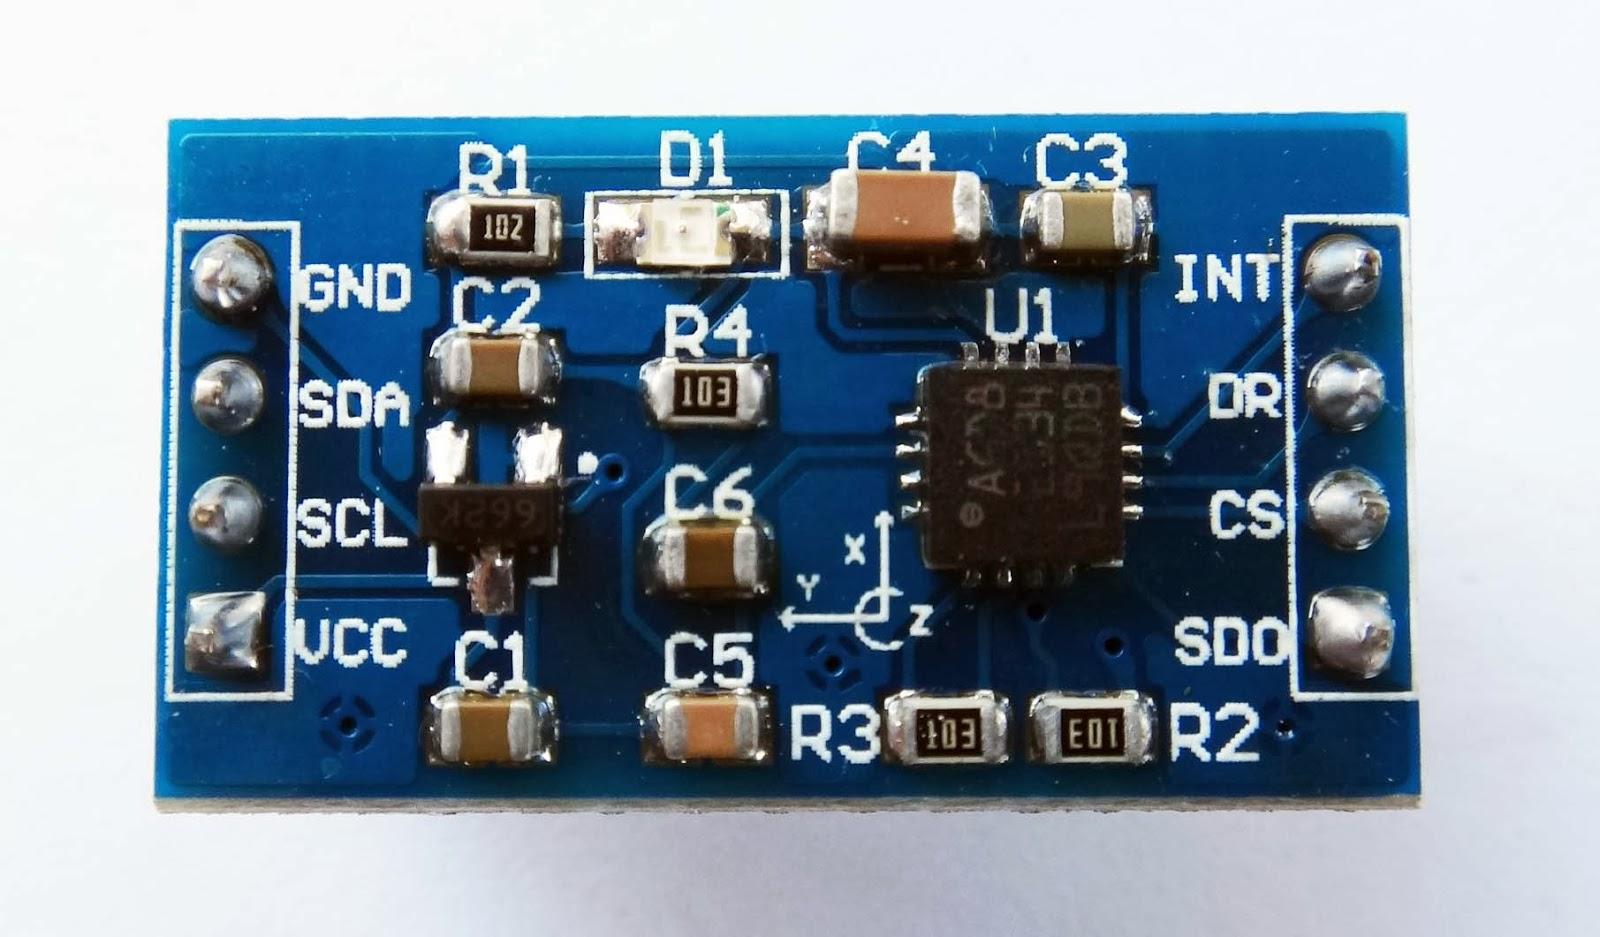 Myanmar Electronic Store 3 Axis Accelerometer Using Pic16f887 Triple Gyroscope Low Power L3g4200d Selectable Full Scales 250 500 2000 Dps I2c Spi Digital Output Interface